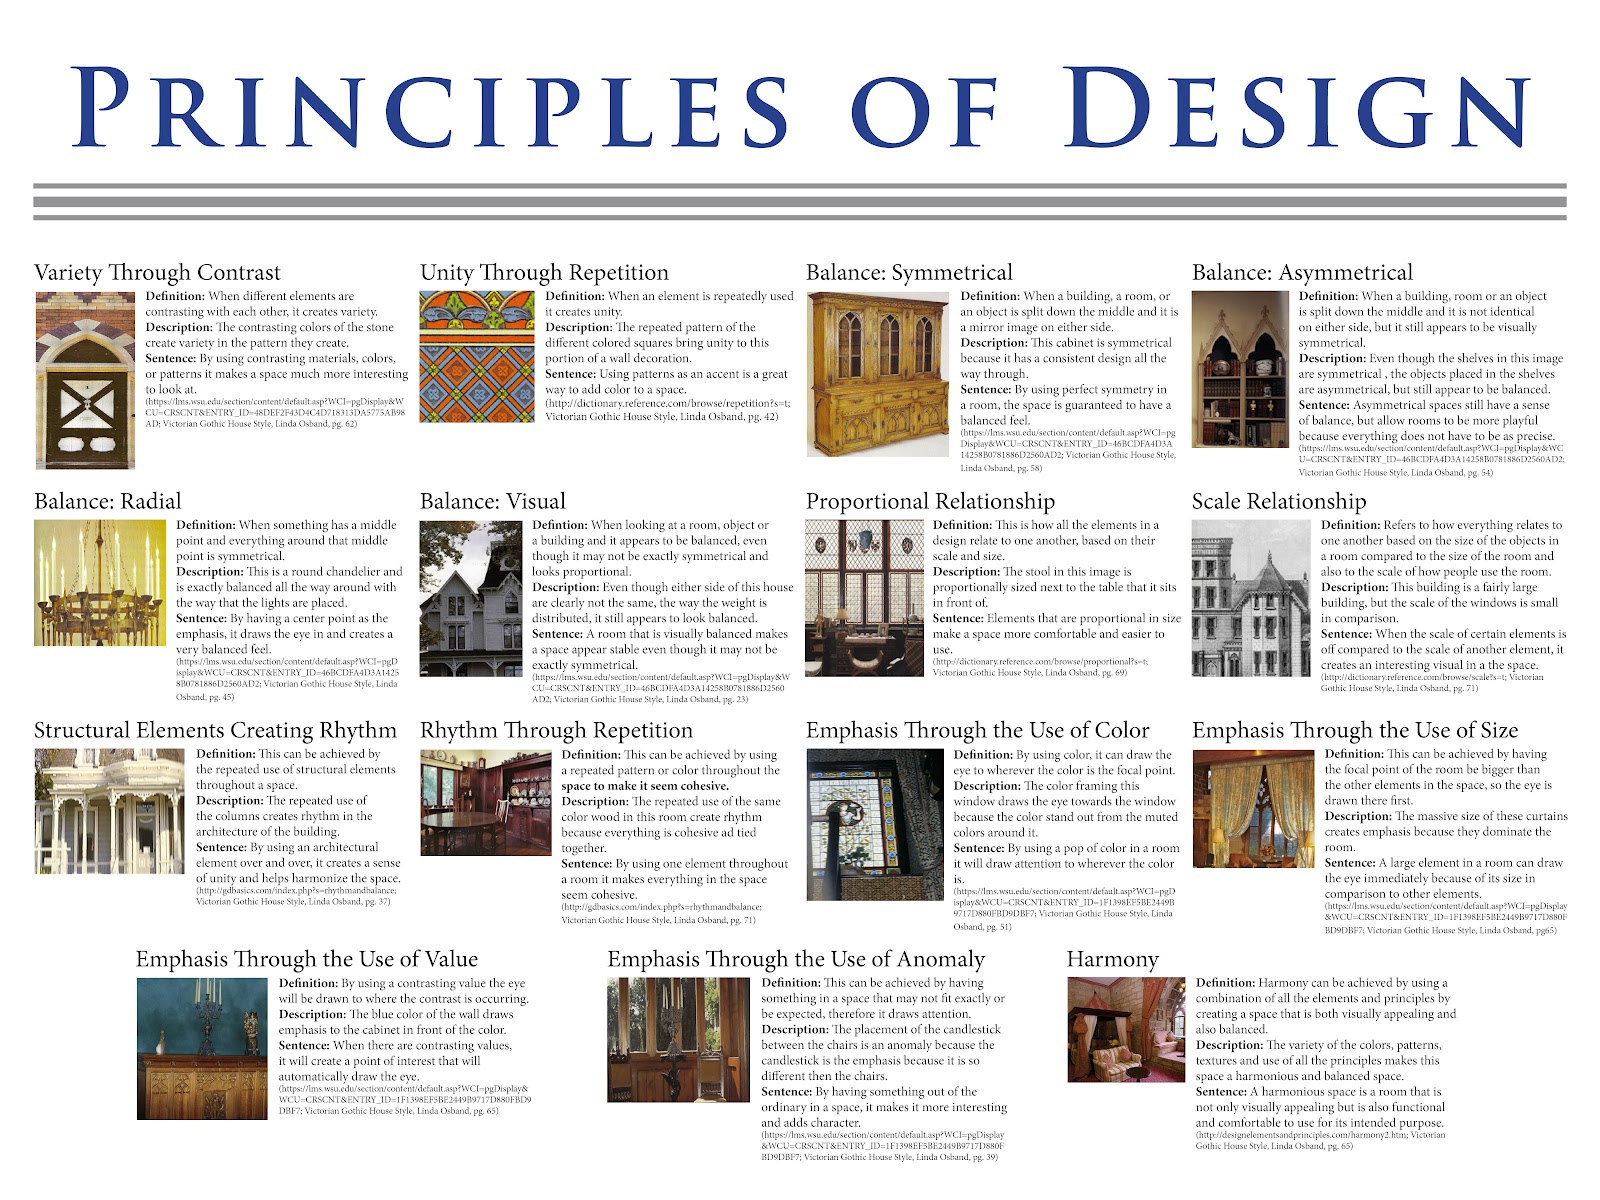 Definition of a poster design - Principles Of Design